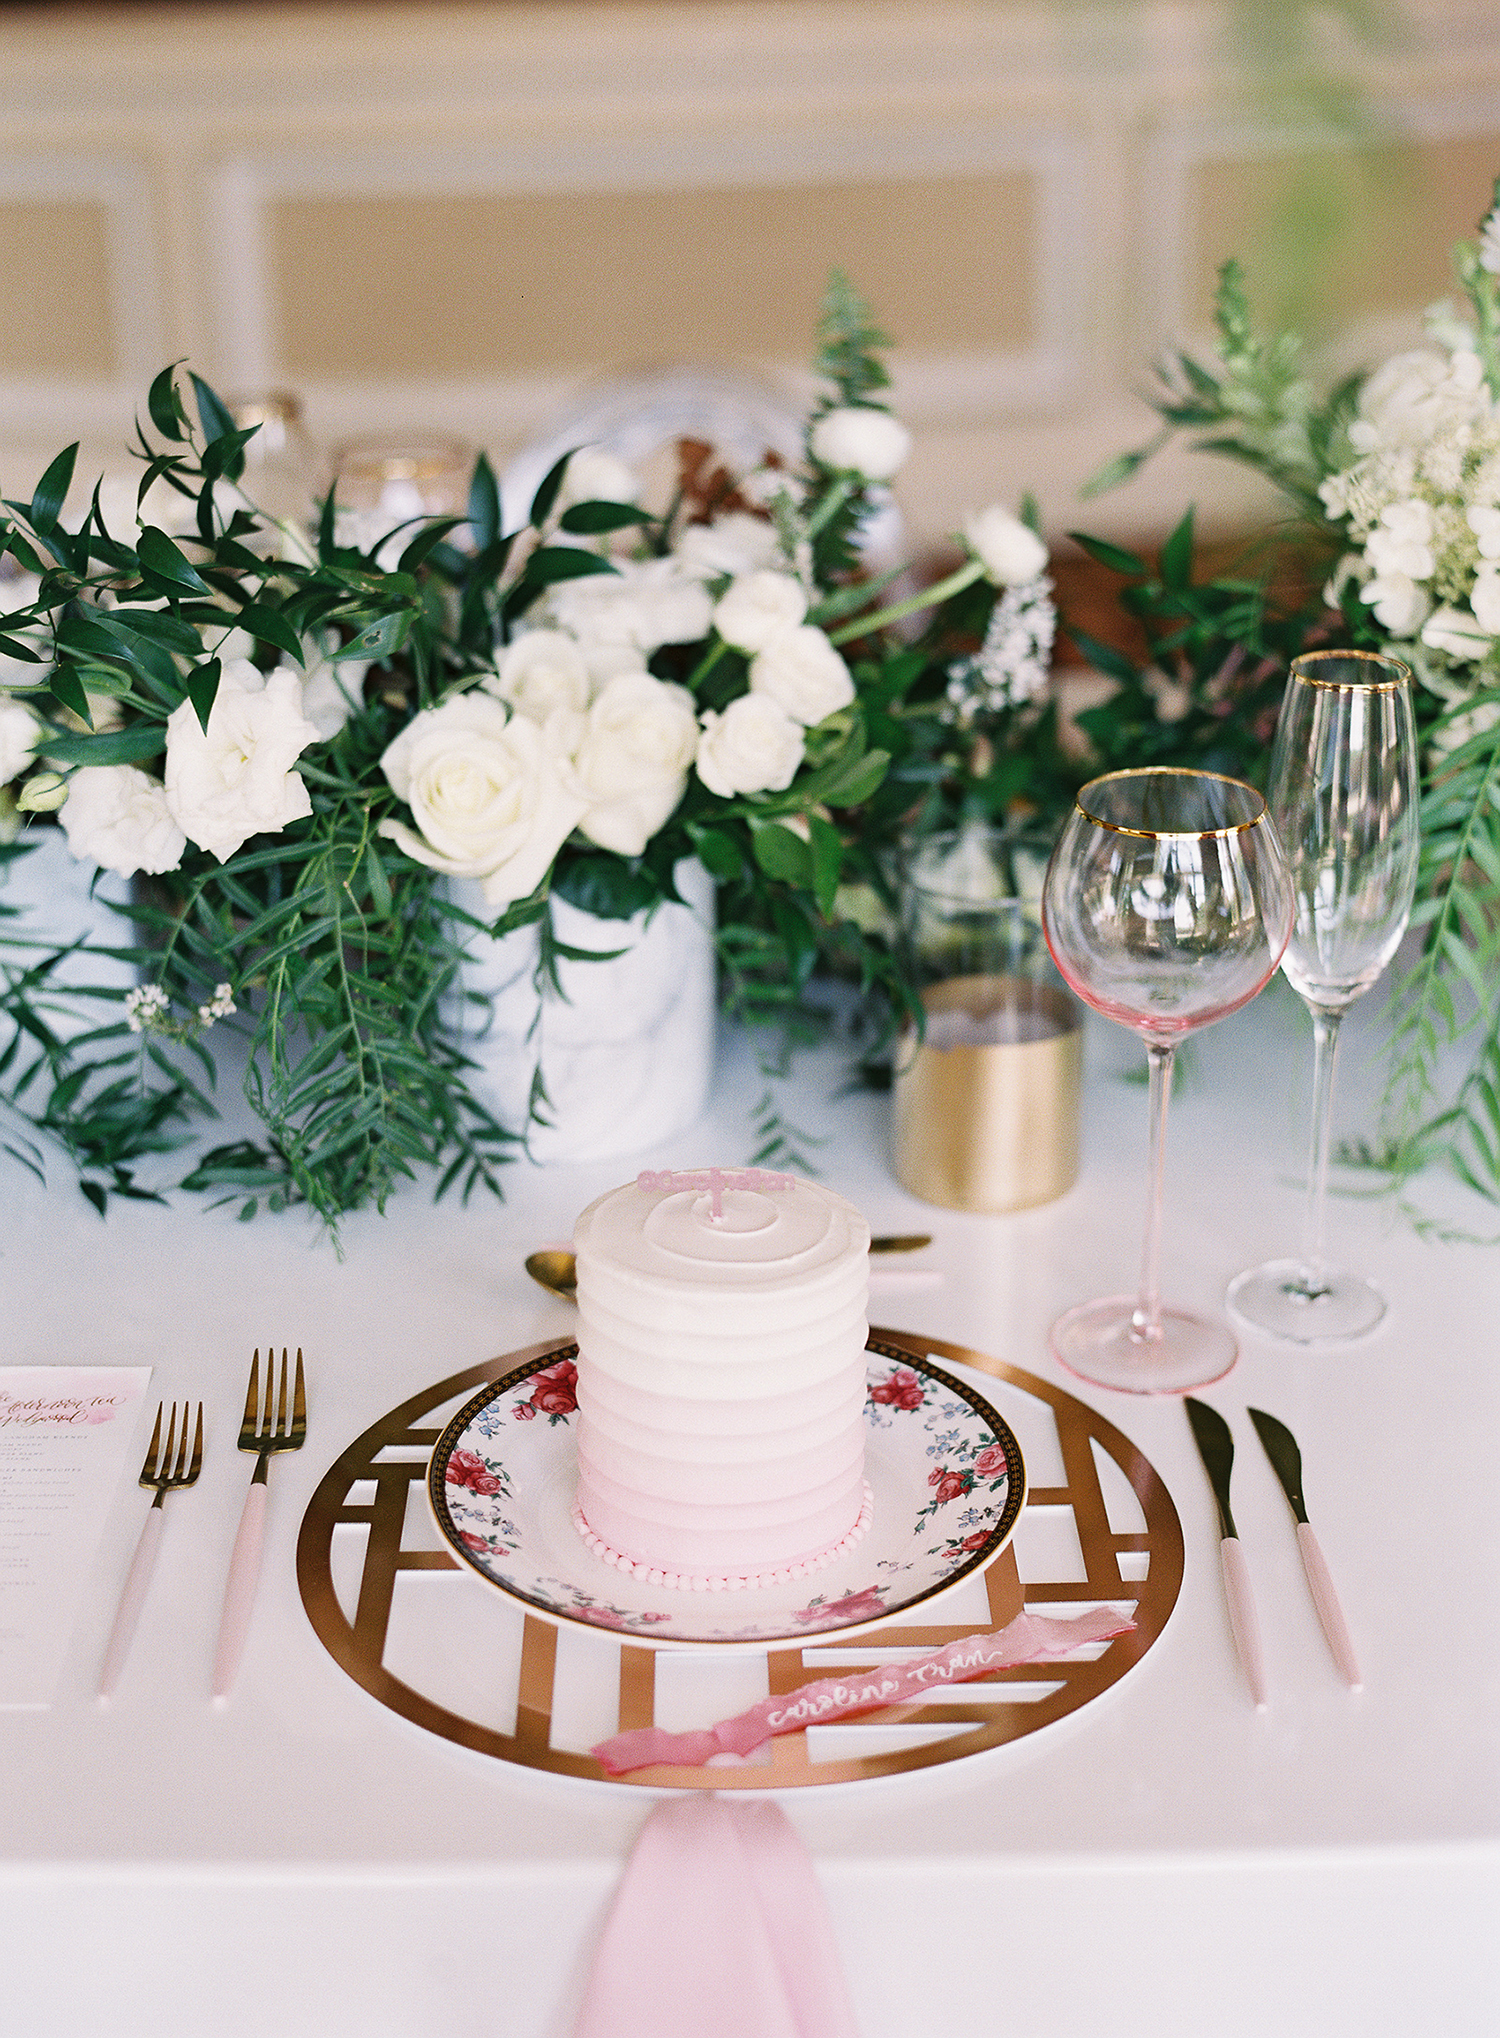 Fabulous 25 Bridal Shower Centerpieces The Bride To Be Will Love Home Interior And Landscaping Ologienasavecom